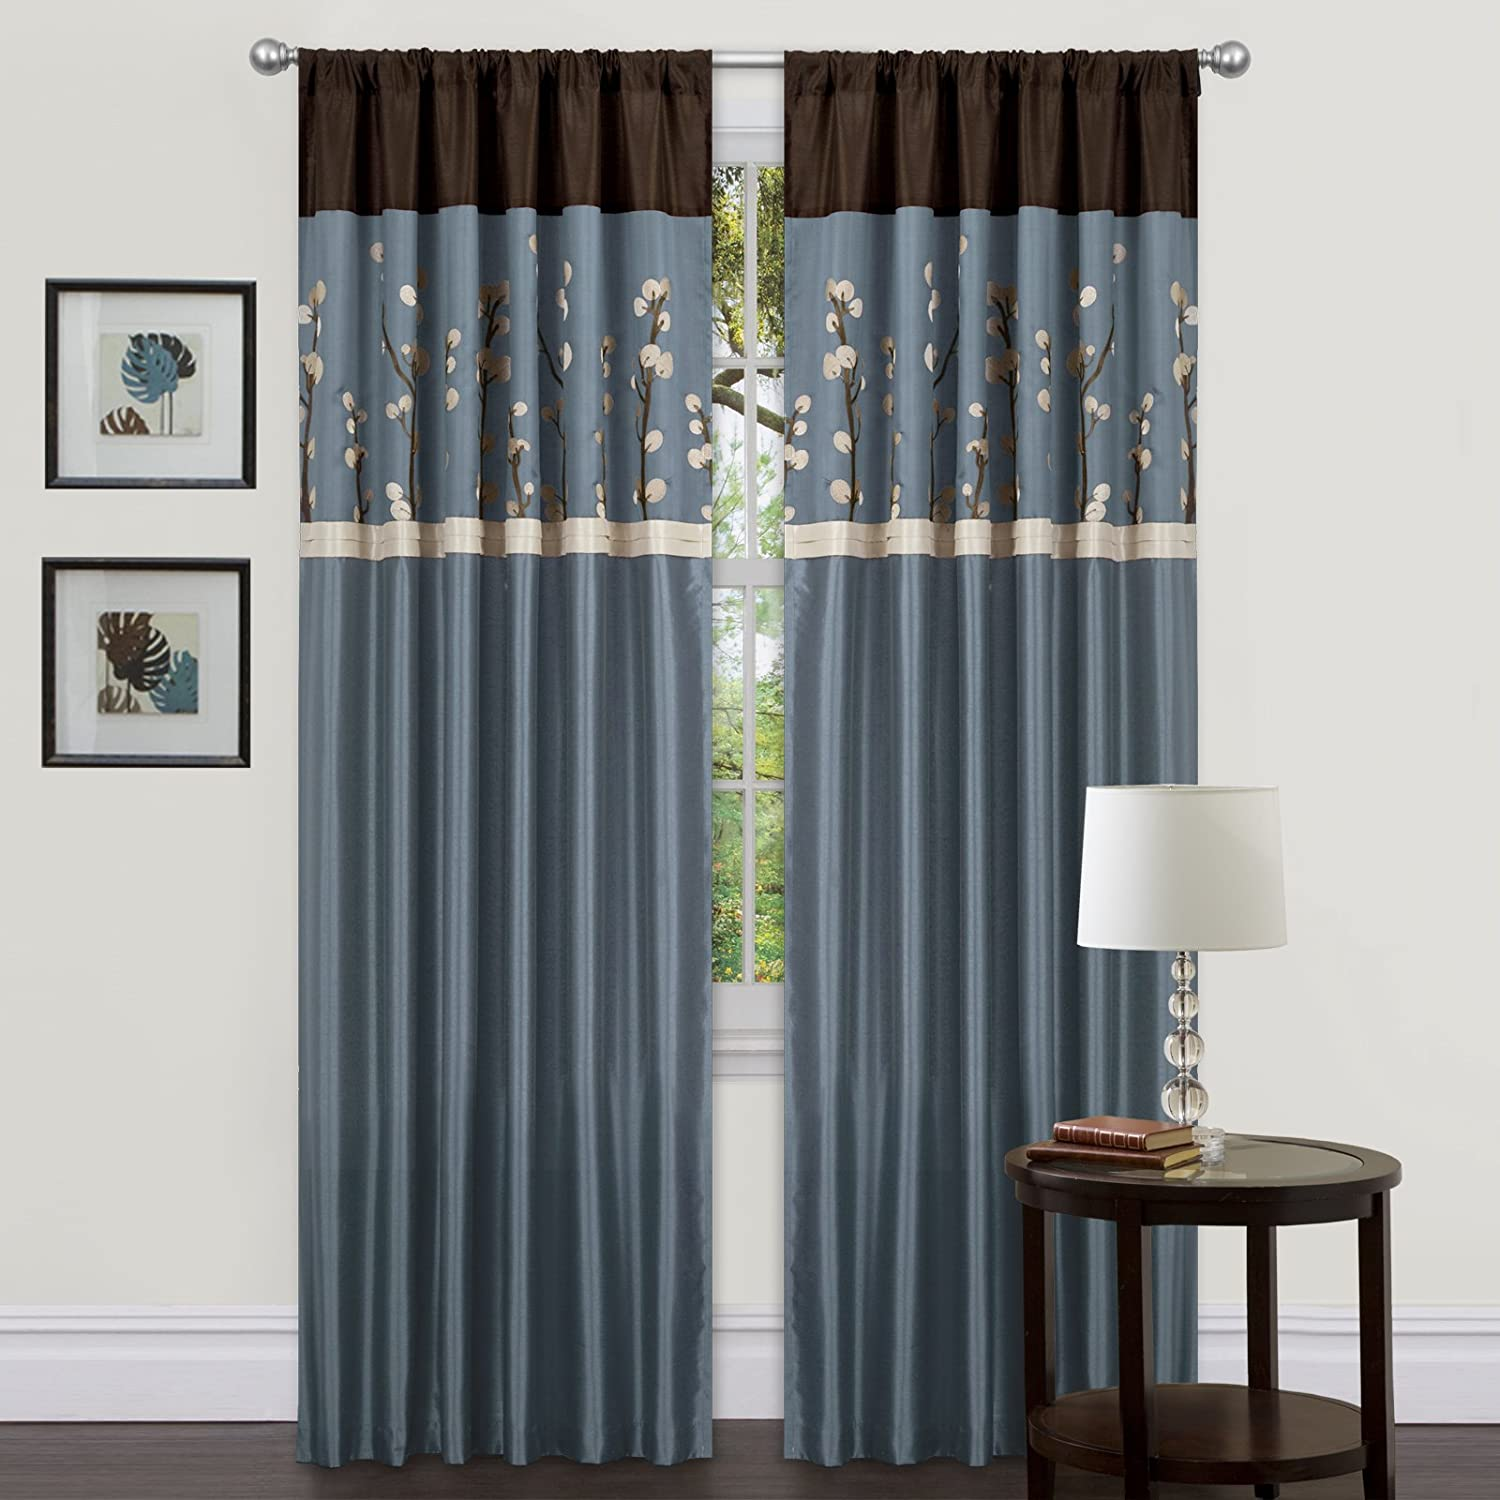 blue and brown curtains cheap sale ease bedding with style. Black Bedroom Furniture Sets. Home Design Ideas